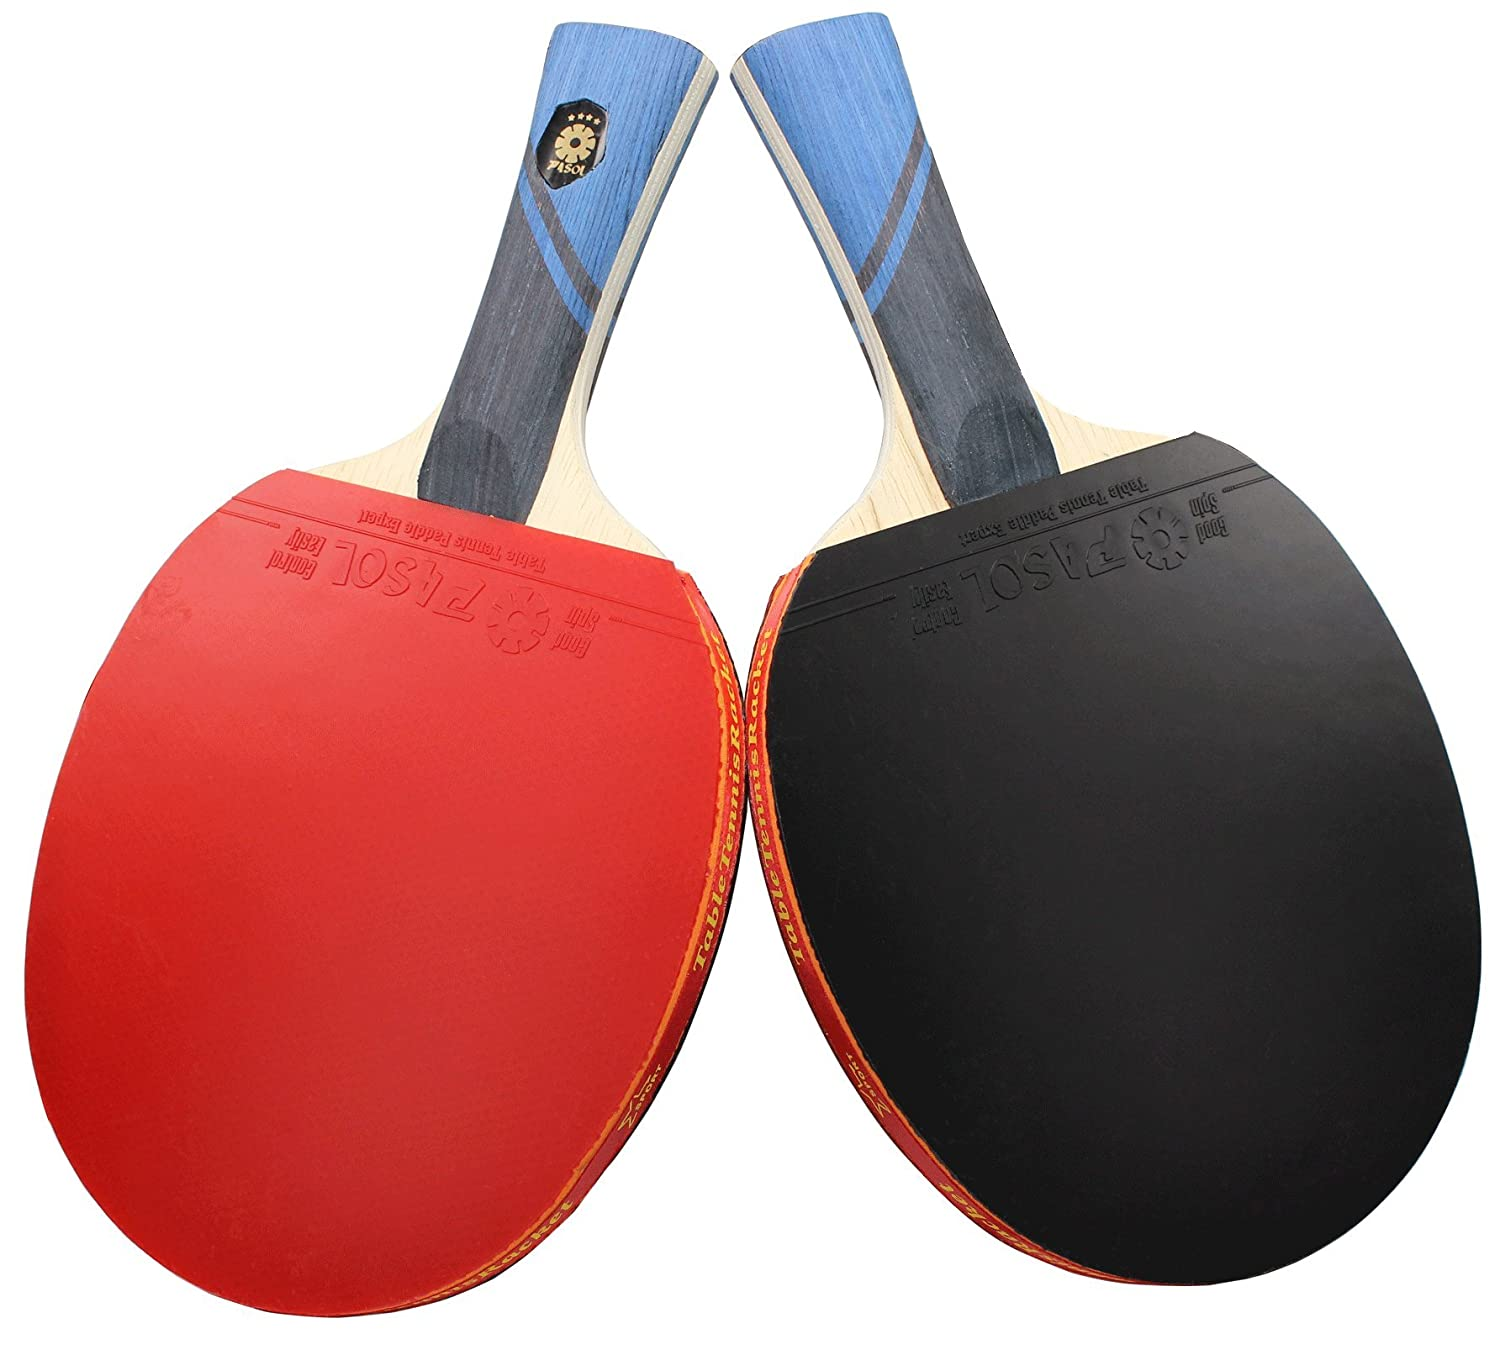 2 Player PASOL 4 Star Advanced Training Ping Pong Paddle Premium Practice Table Tennis Rackets